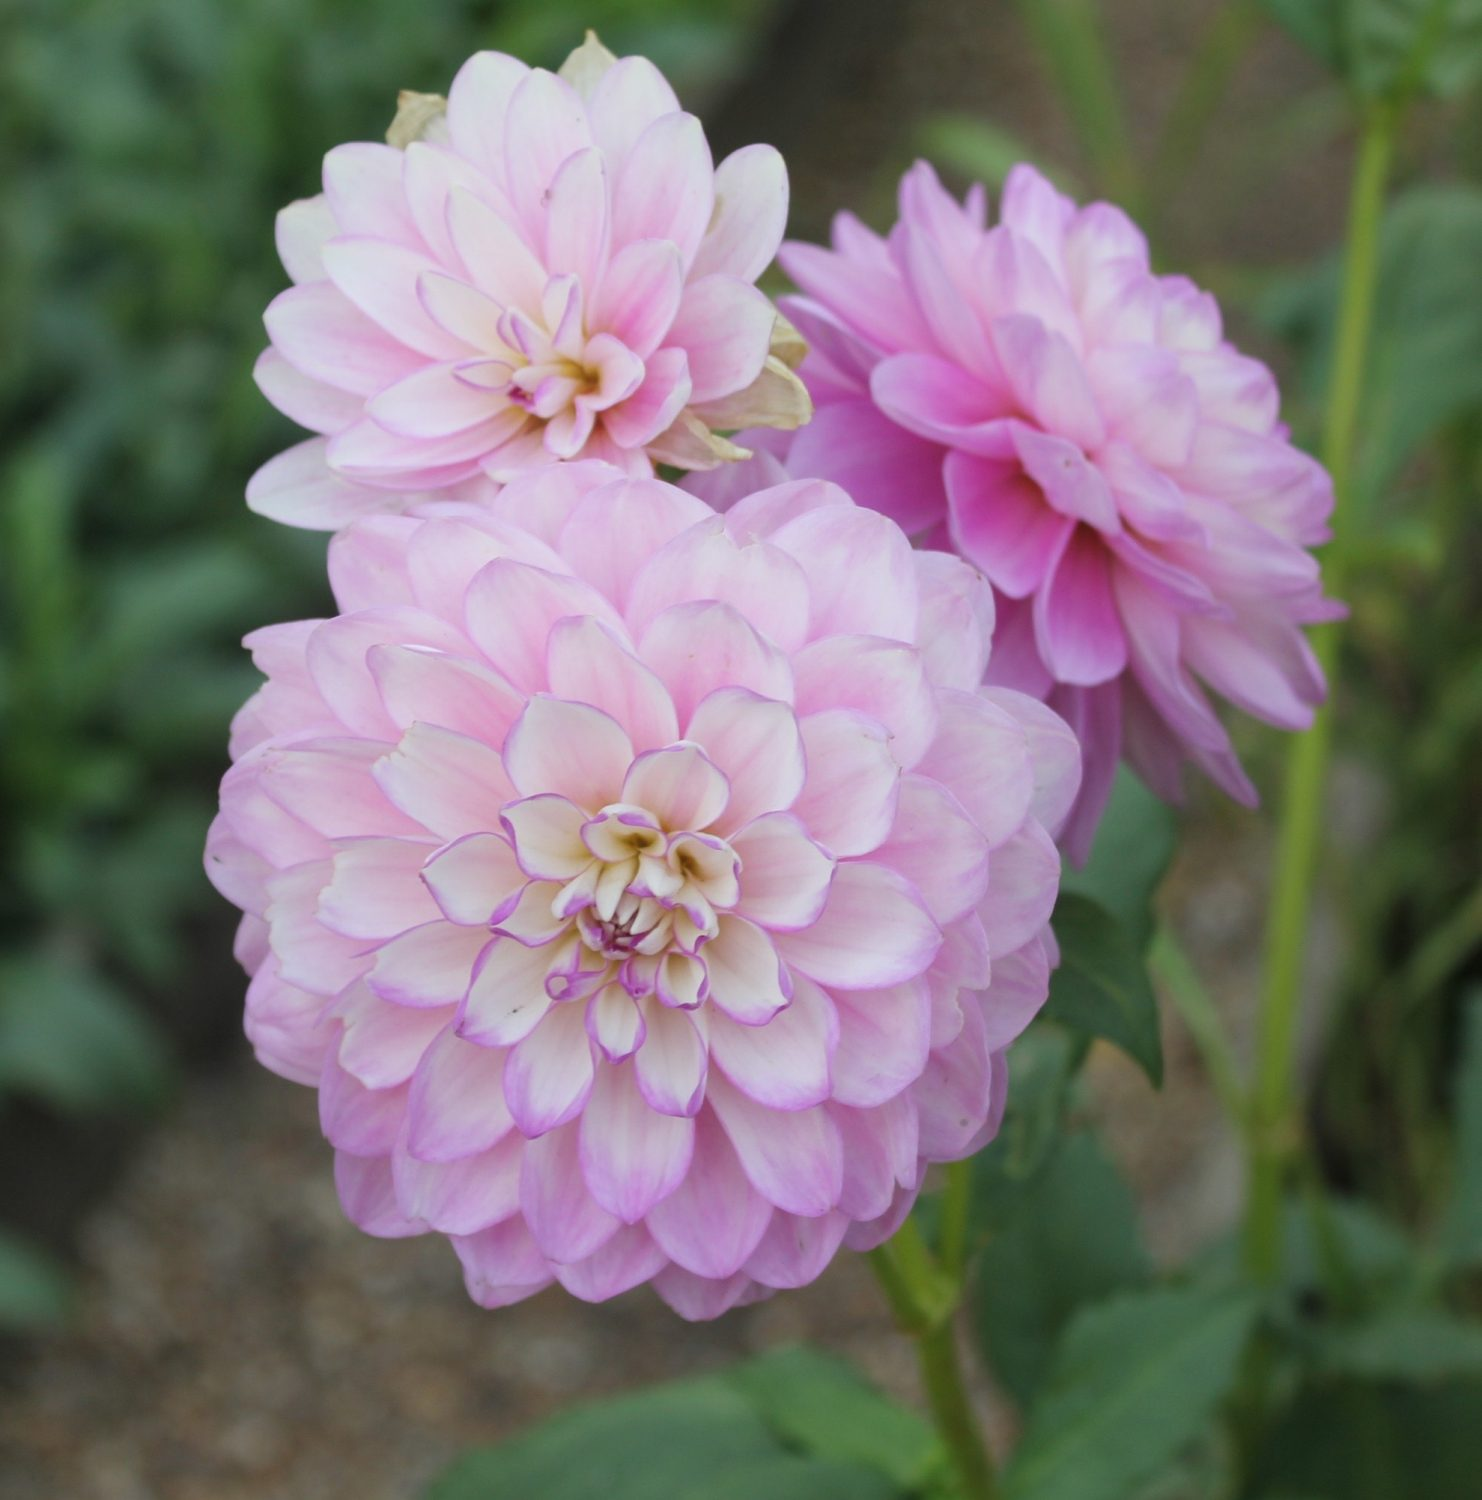 Dahlias come in many varieties